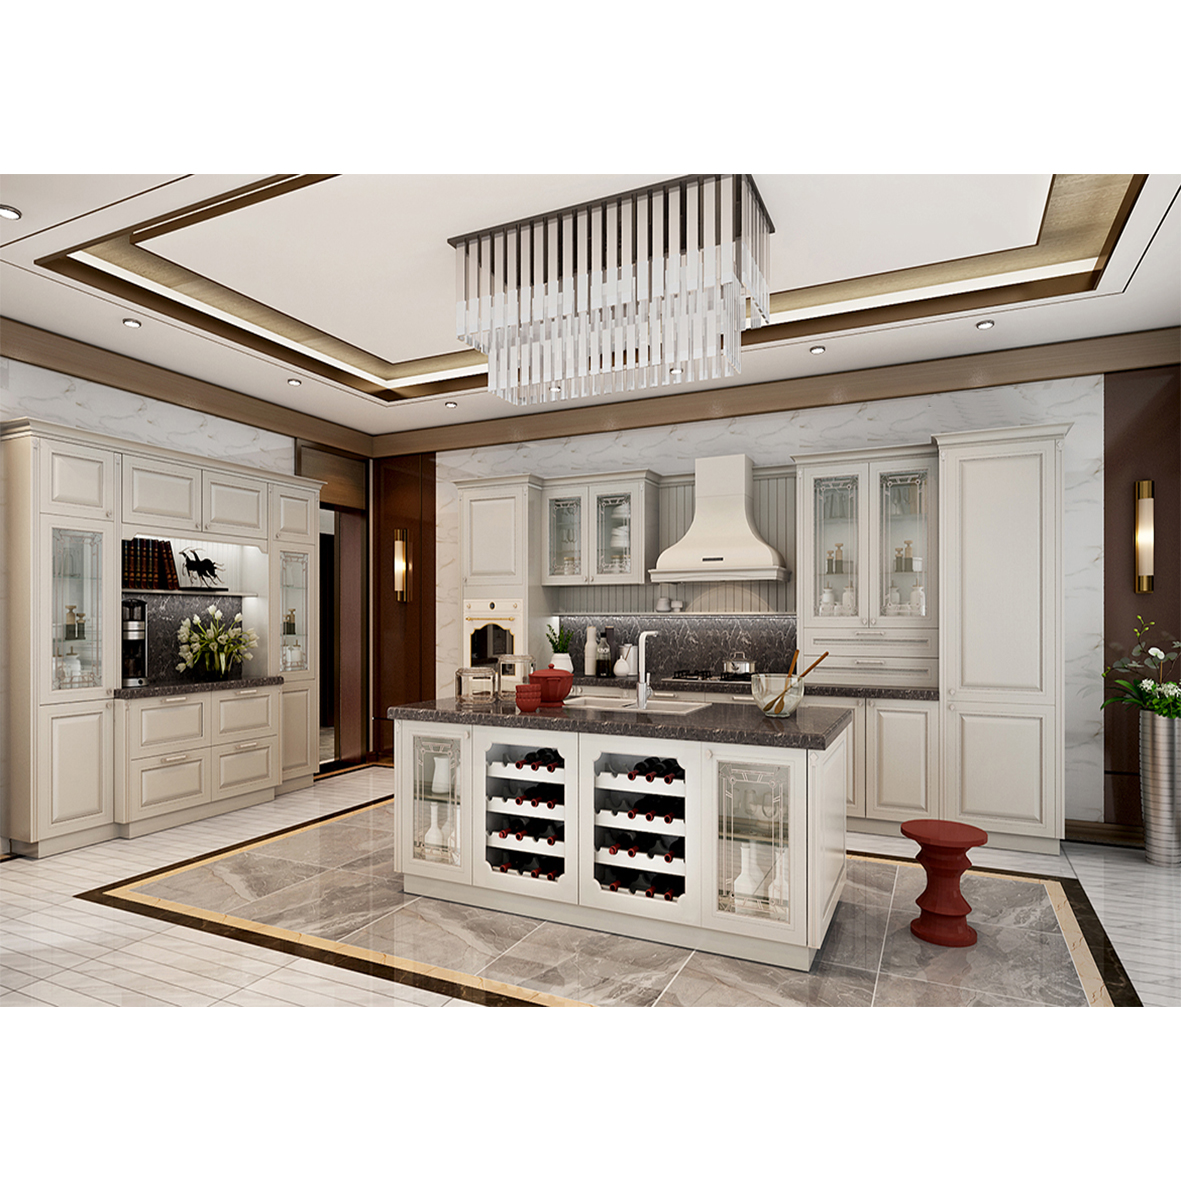 Modern European Design Pvc Membrane Kitchen Cabinets New Products Affordable Pvc Membrane Kitchen Cabinets Buy Acrylic Mdf Shutter Acrylic Mdf Kitchen Cabinet Contemporary Kitchen Cabinet Product On Alibaba Com